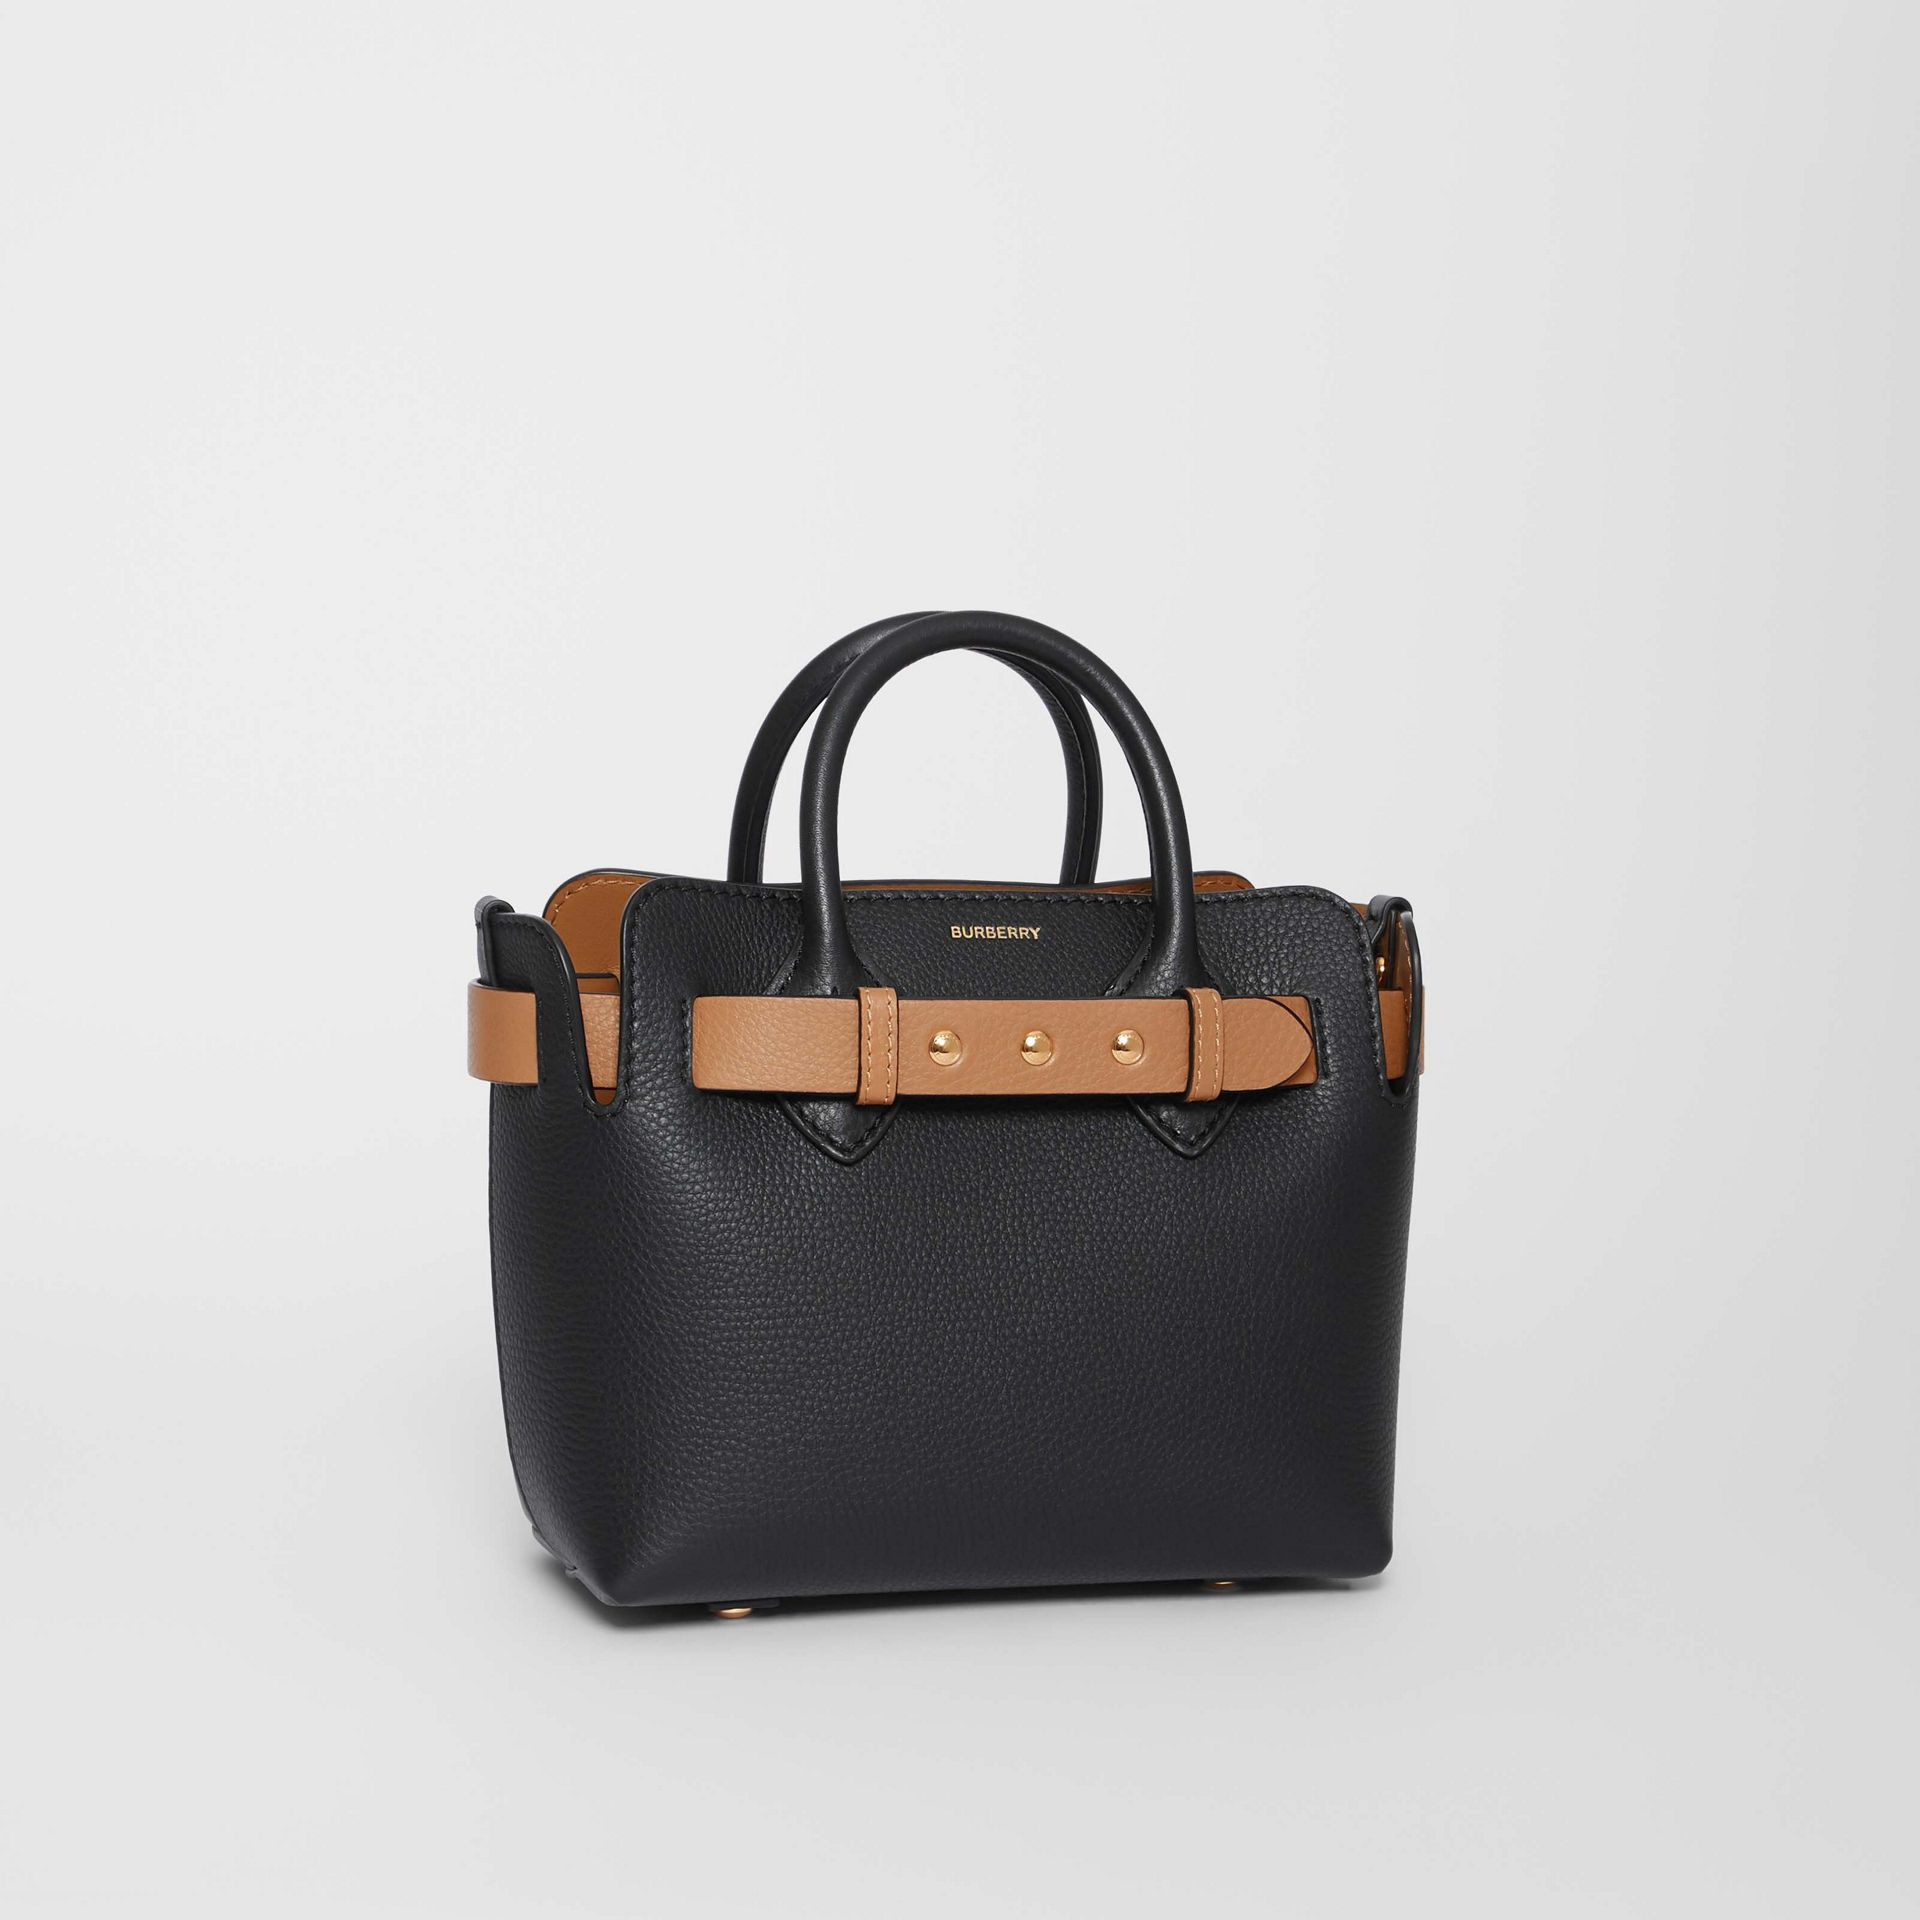 Borsa The Belt mini in pelle con tre borchie (Nero) - Donna | Burberry - immagine della galleria 6